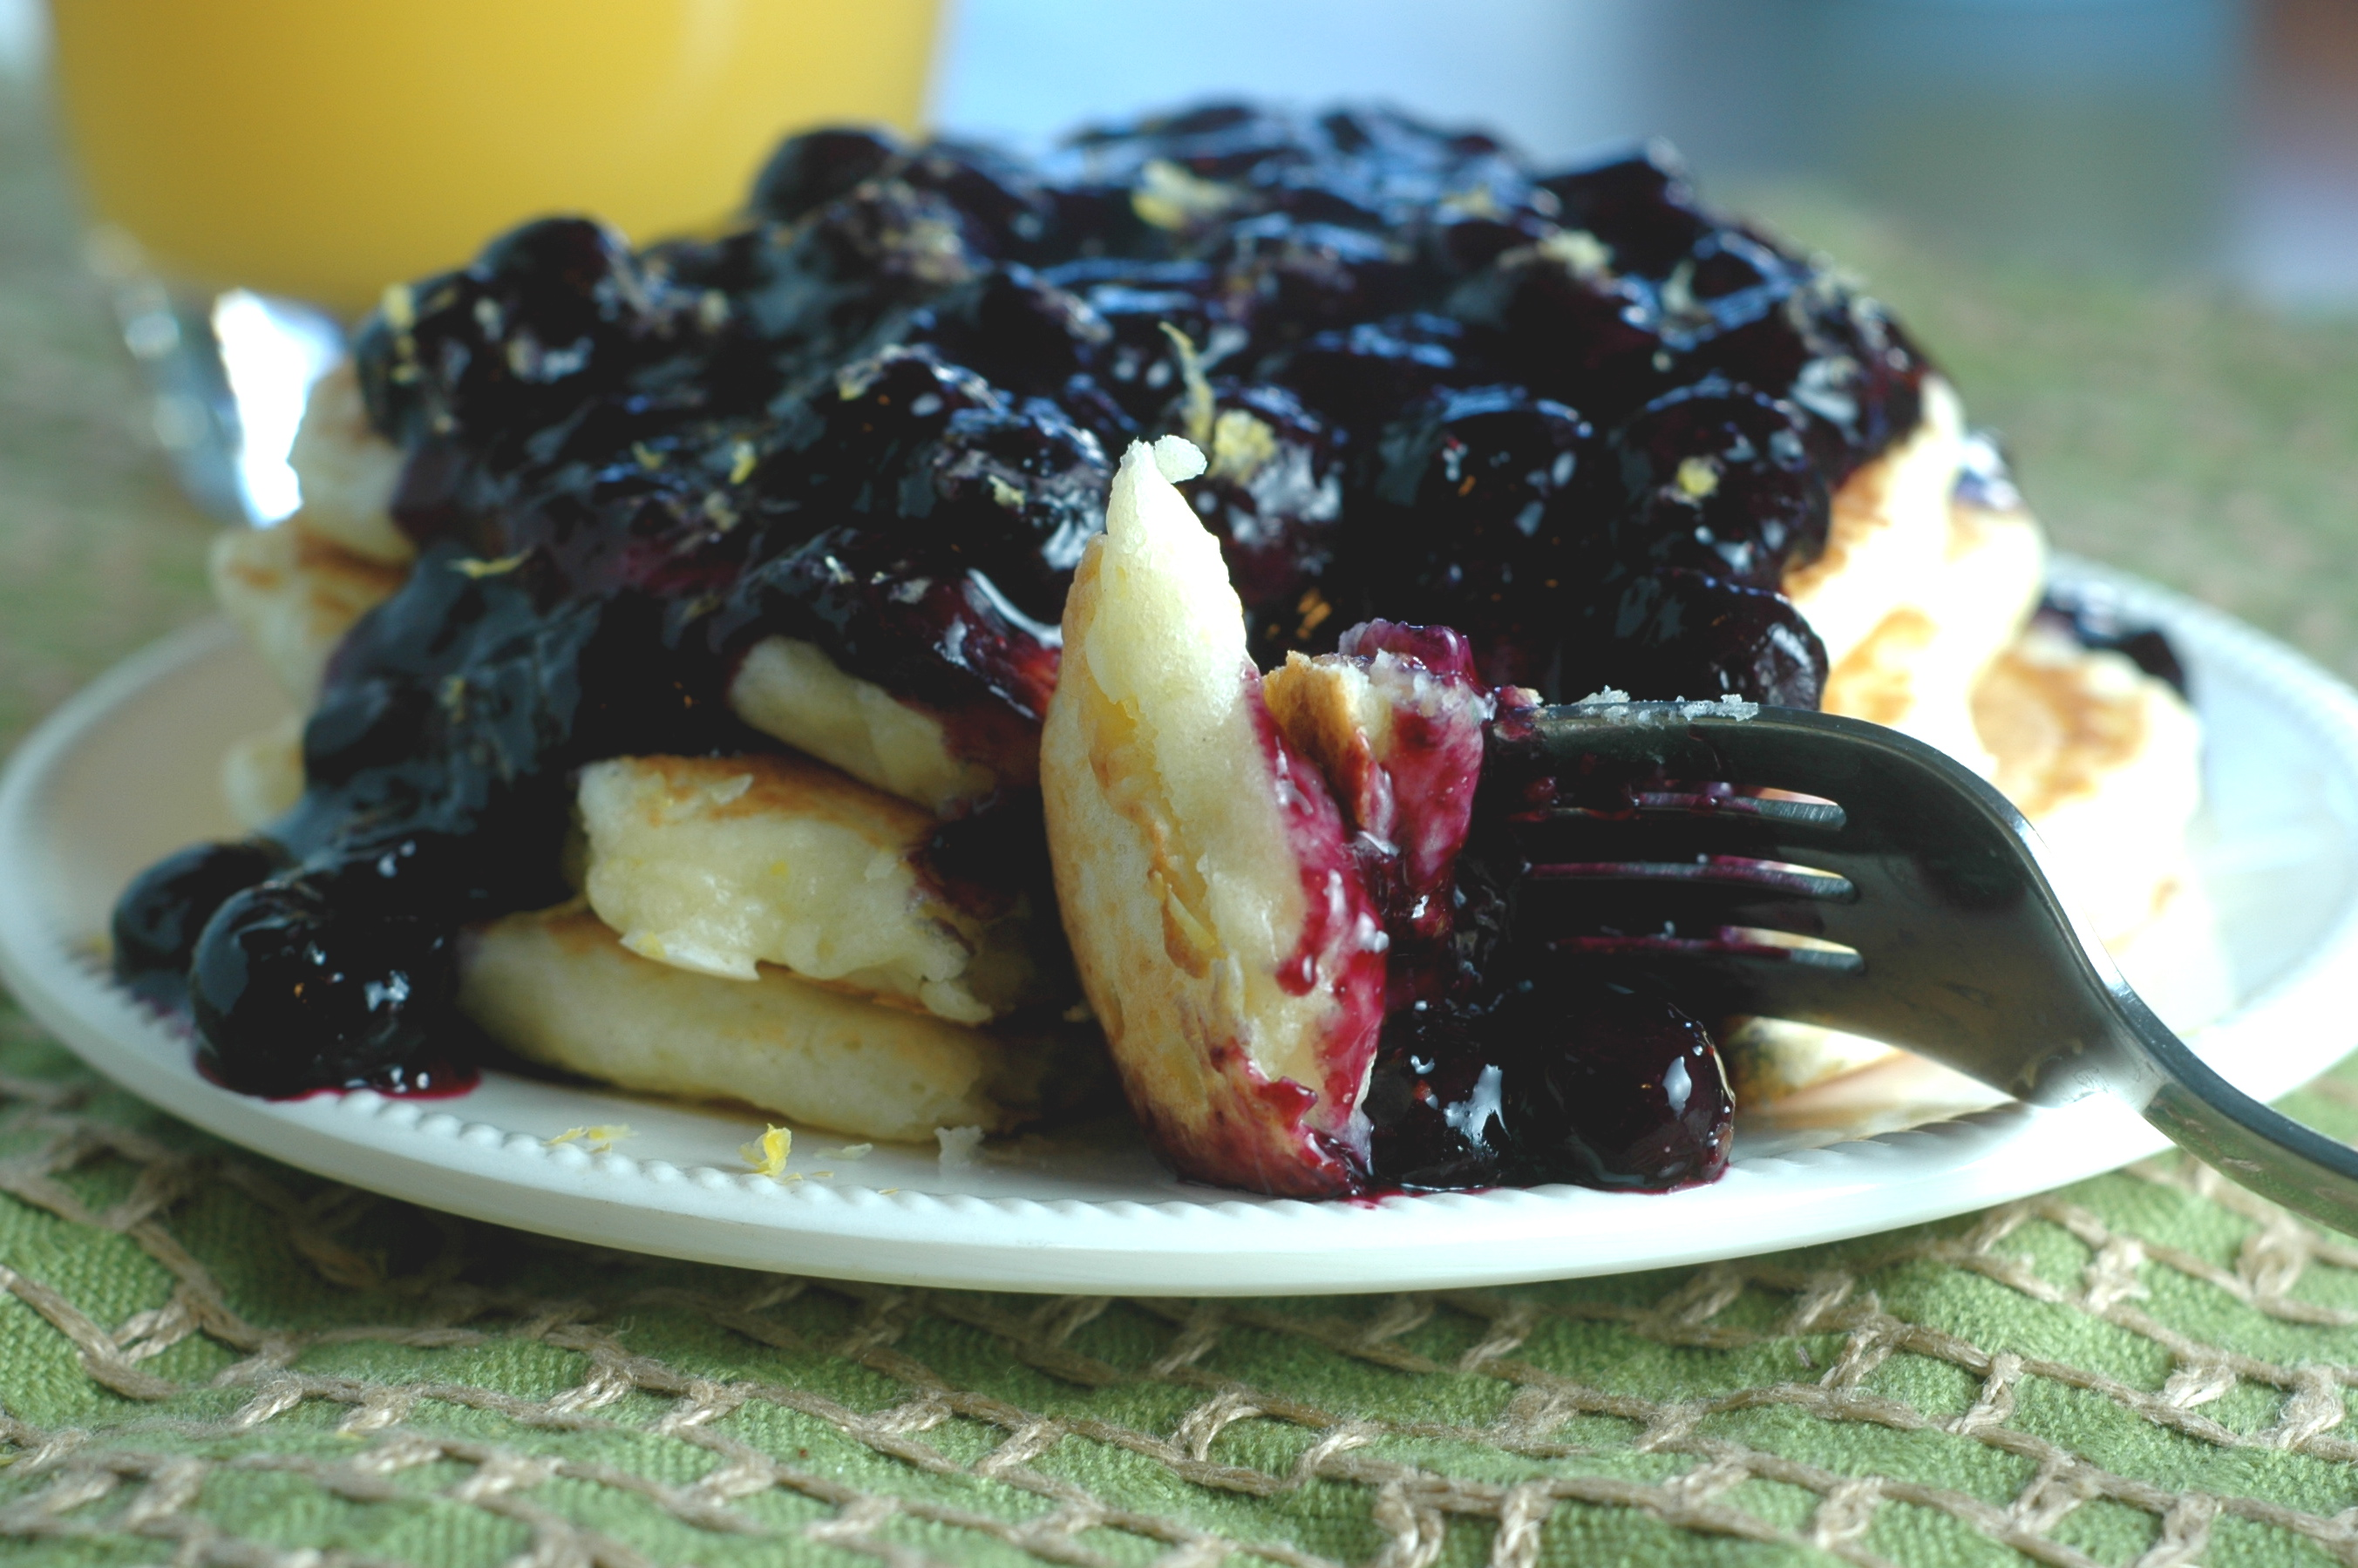 Lemon Ricotta Pancakes with Blueberry Sauce - but i'm hungry